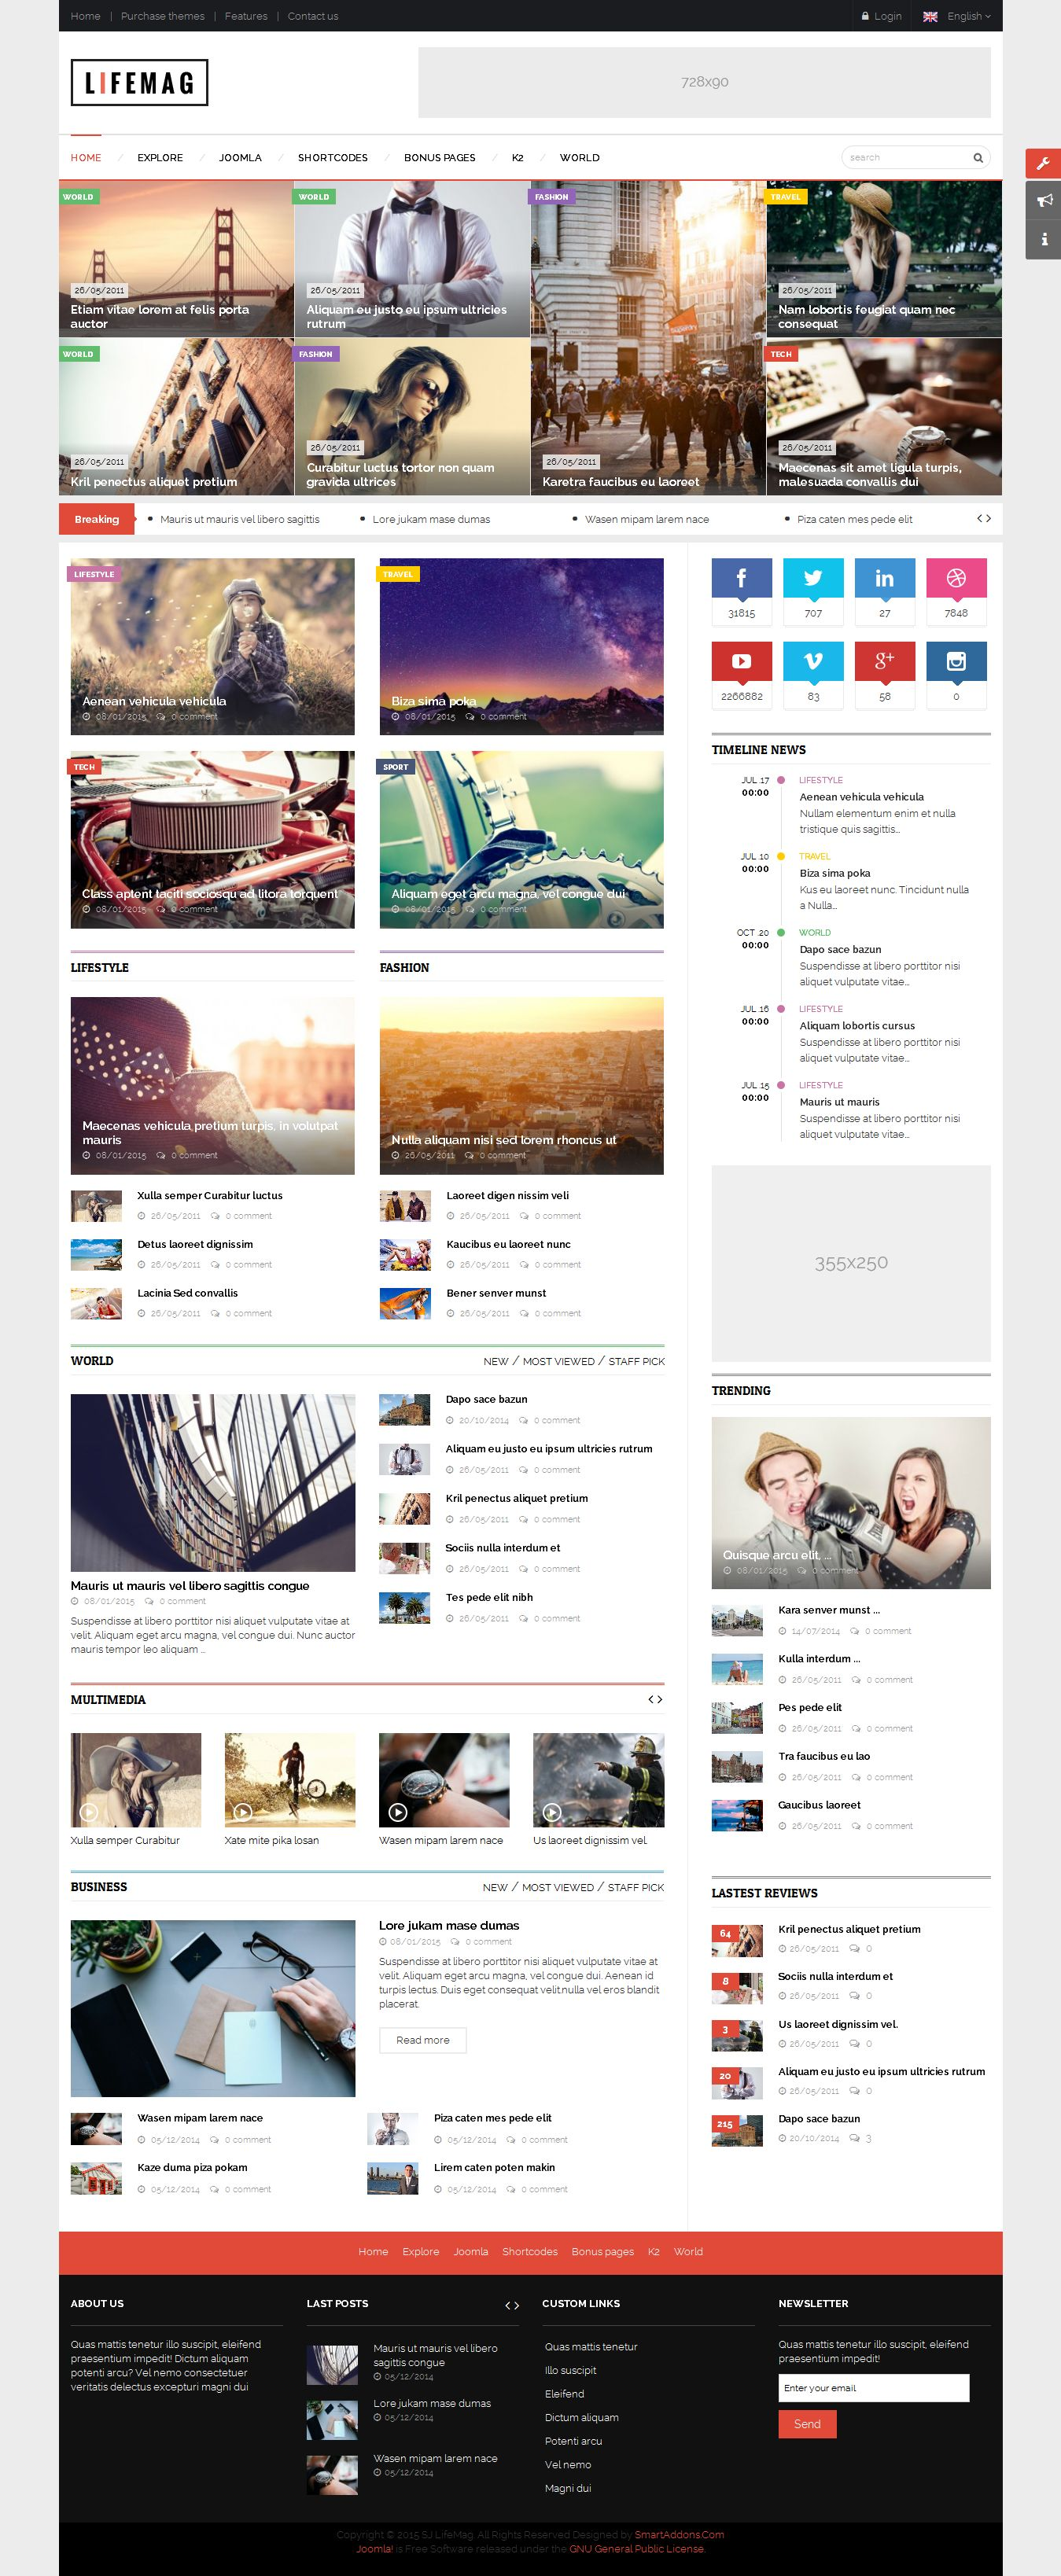 SJ LifeMag - Responsive Joomla News Magazine Template - 02_index.jpg